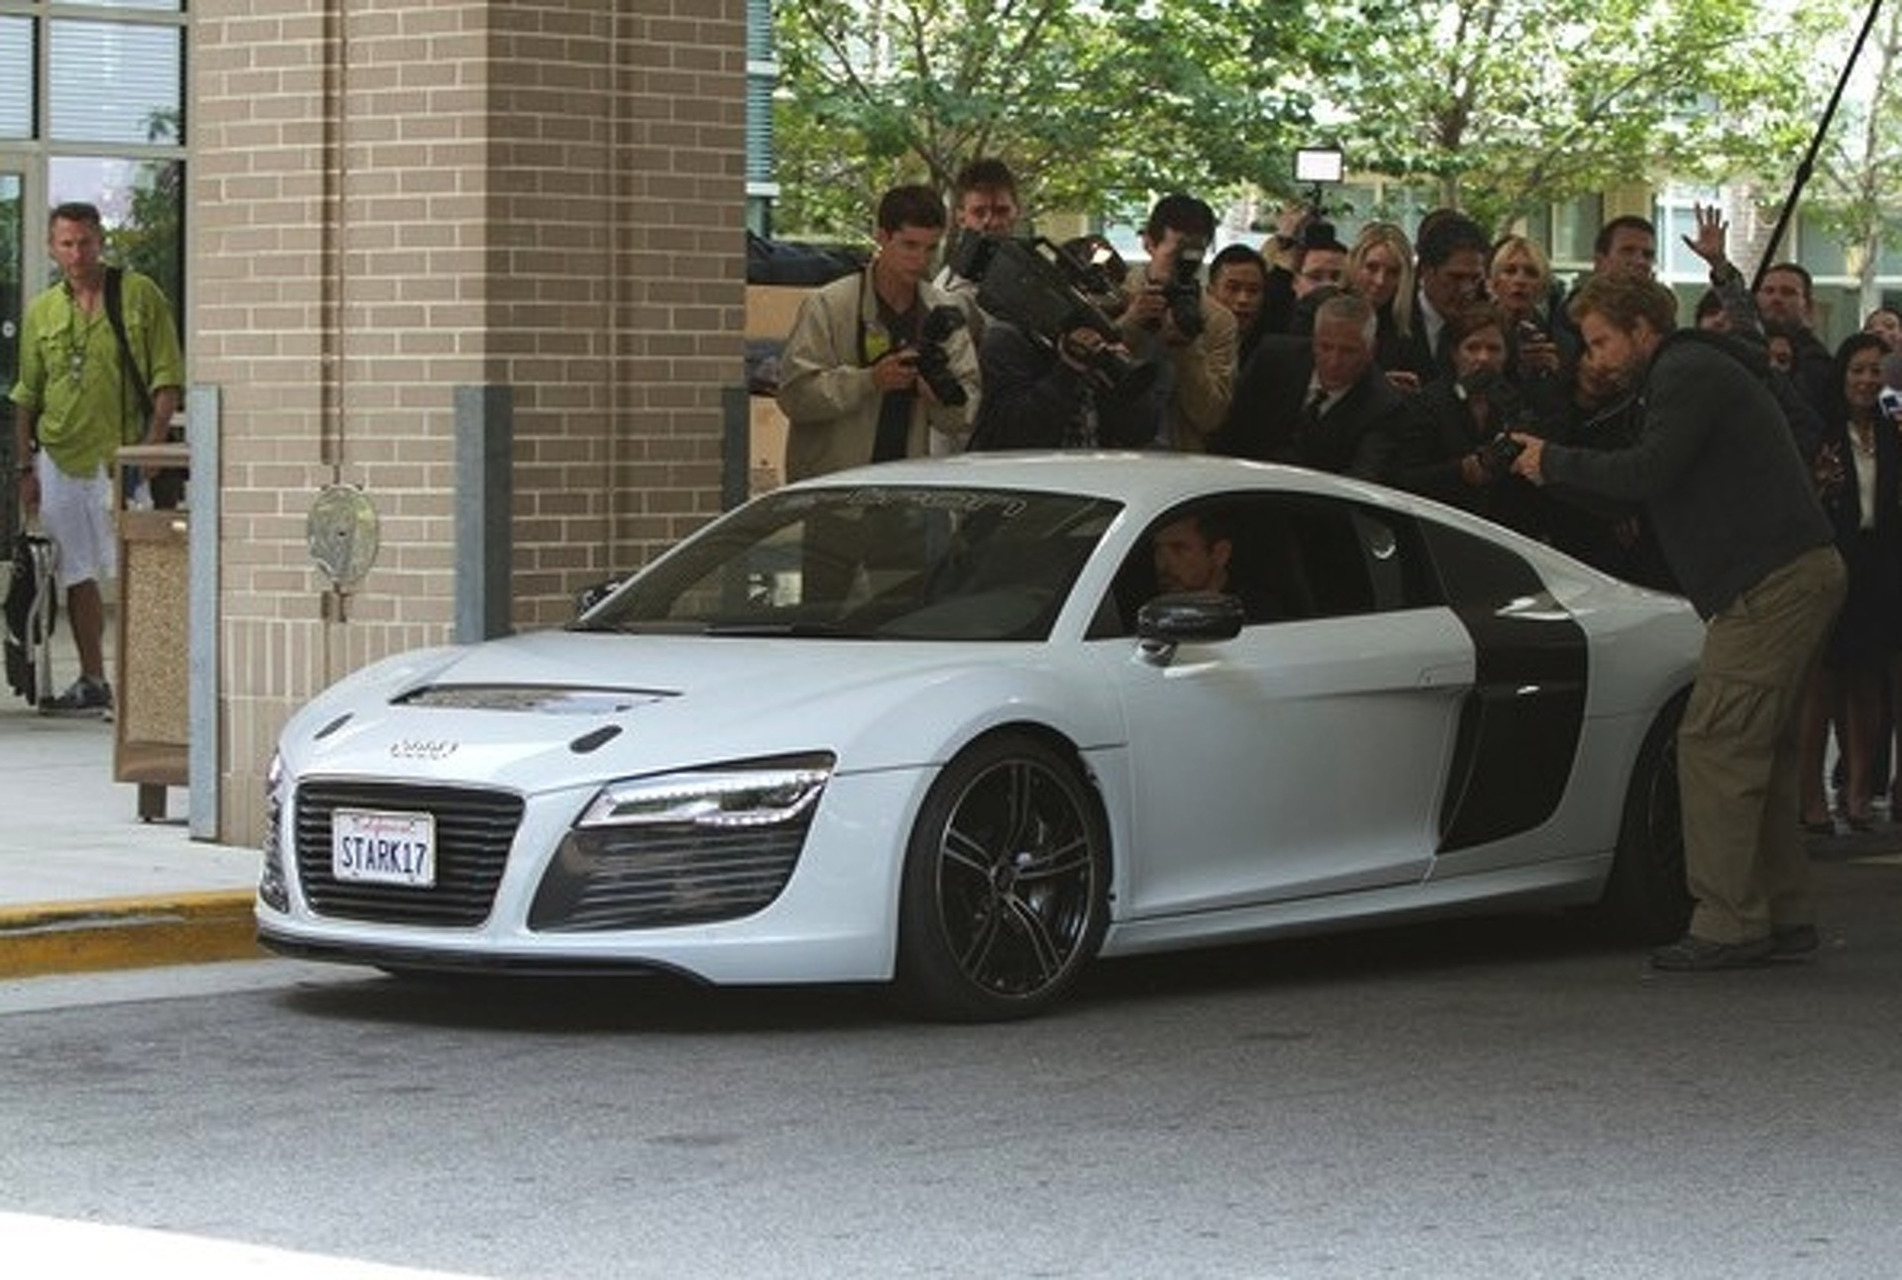 Tony Stark Electrifies With Audi R8 e-tron in Iron Man 3 [w/video]